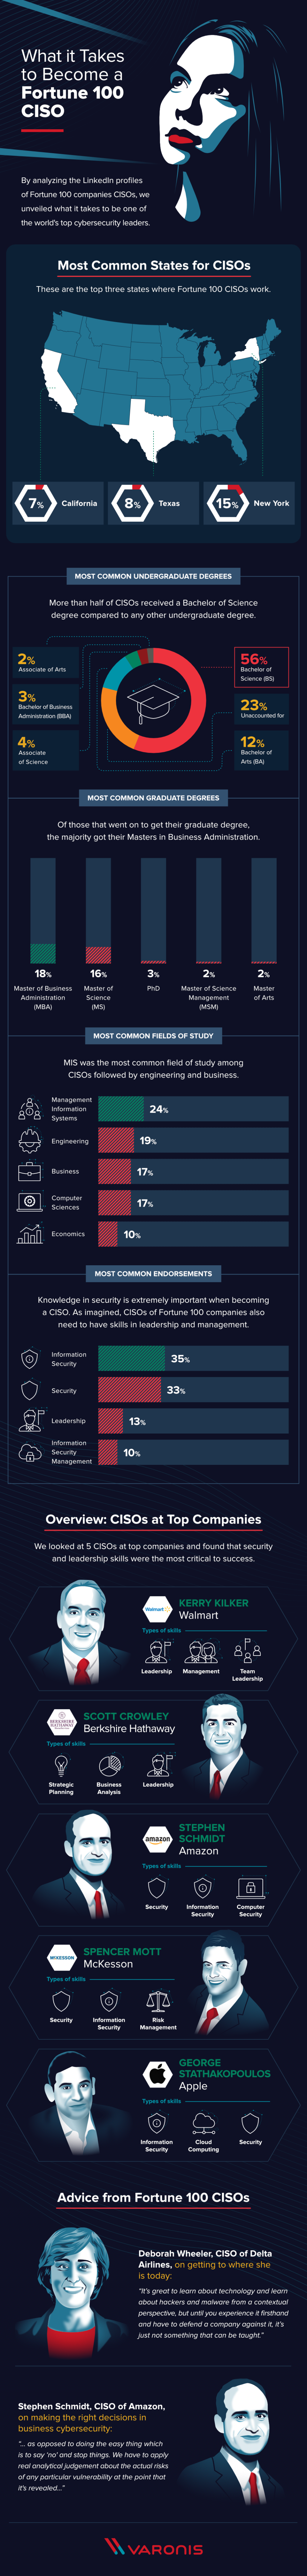 The Top Skills of Fortune 100 CISOs #infographic